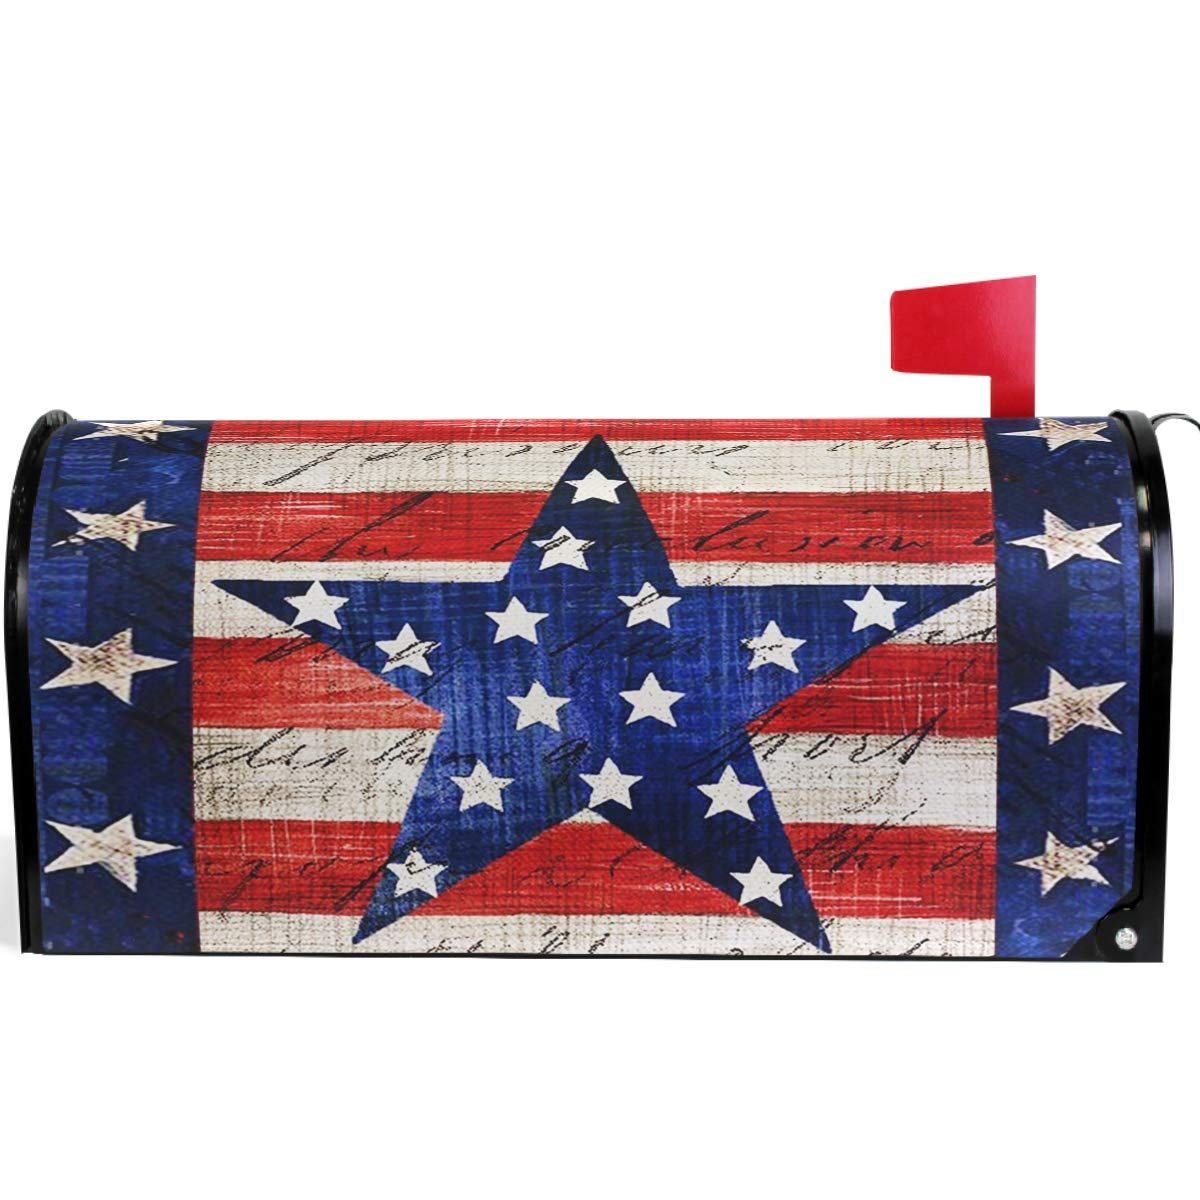 Wamika American Memorial Independence Day Patriotic Eagle Star Mailbox Cover Magnetic Standard Size,Spring 4th of July Letter Post Box Cover Wrap Decoration Welcome Home Garden Outdoor 21'' Lx 18'' W by Wamika